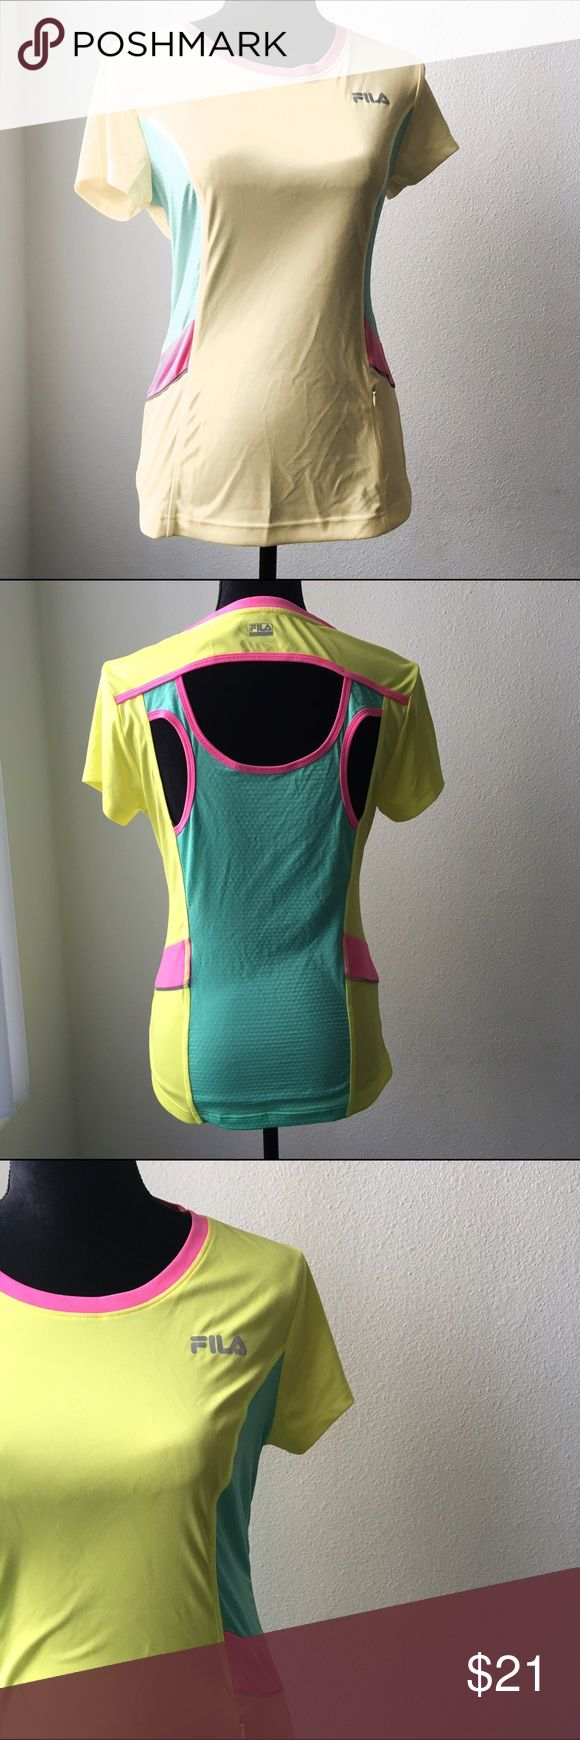 Fila Workout Out Top Neon Colors Cutout Back Sz M Fila | Size Medium | Neon Yellow, Green, Pink | Cutout Back | Workout Top Fila Tops Tees - Short Sleeve